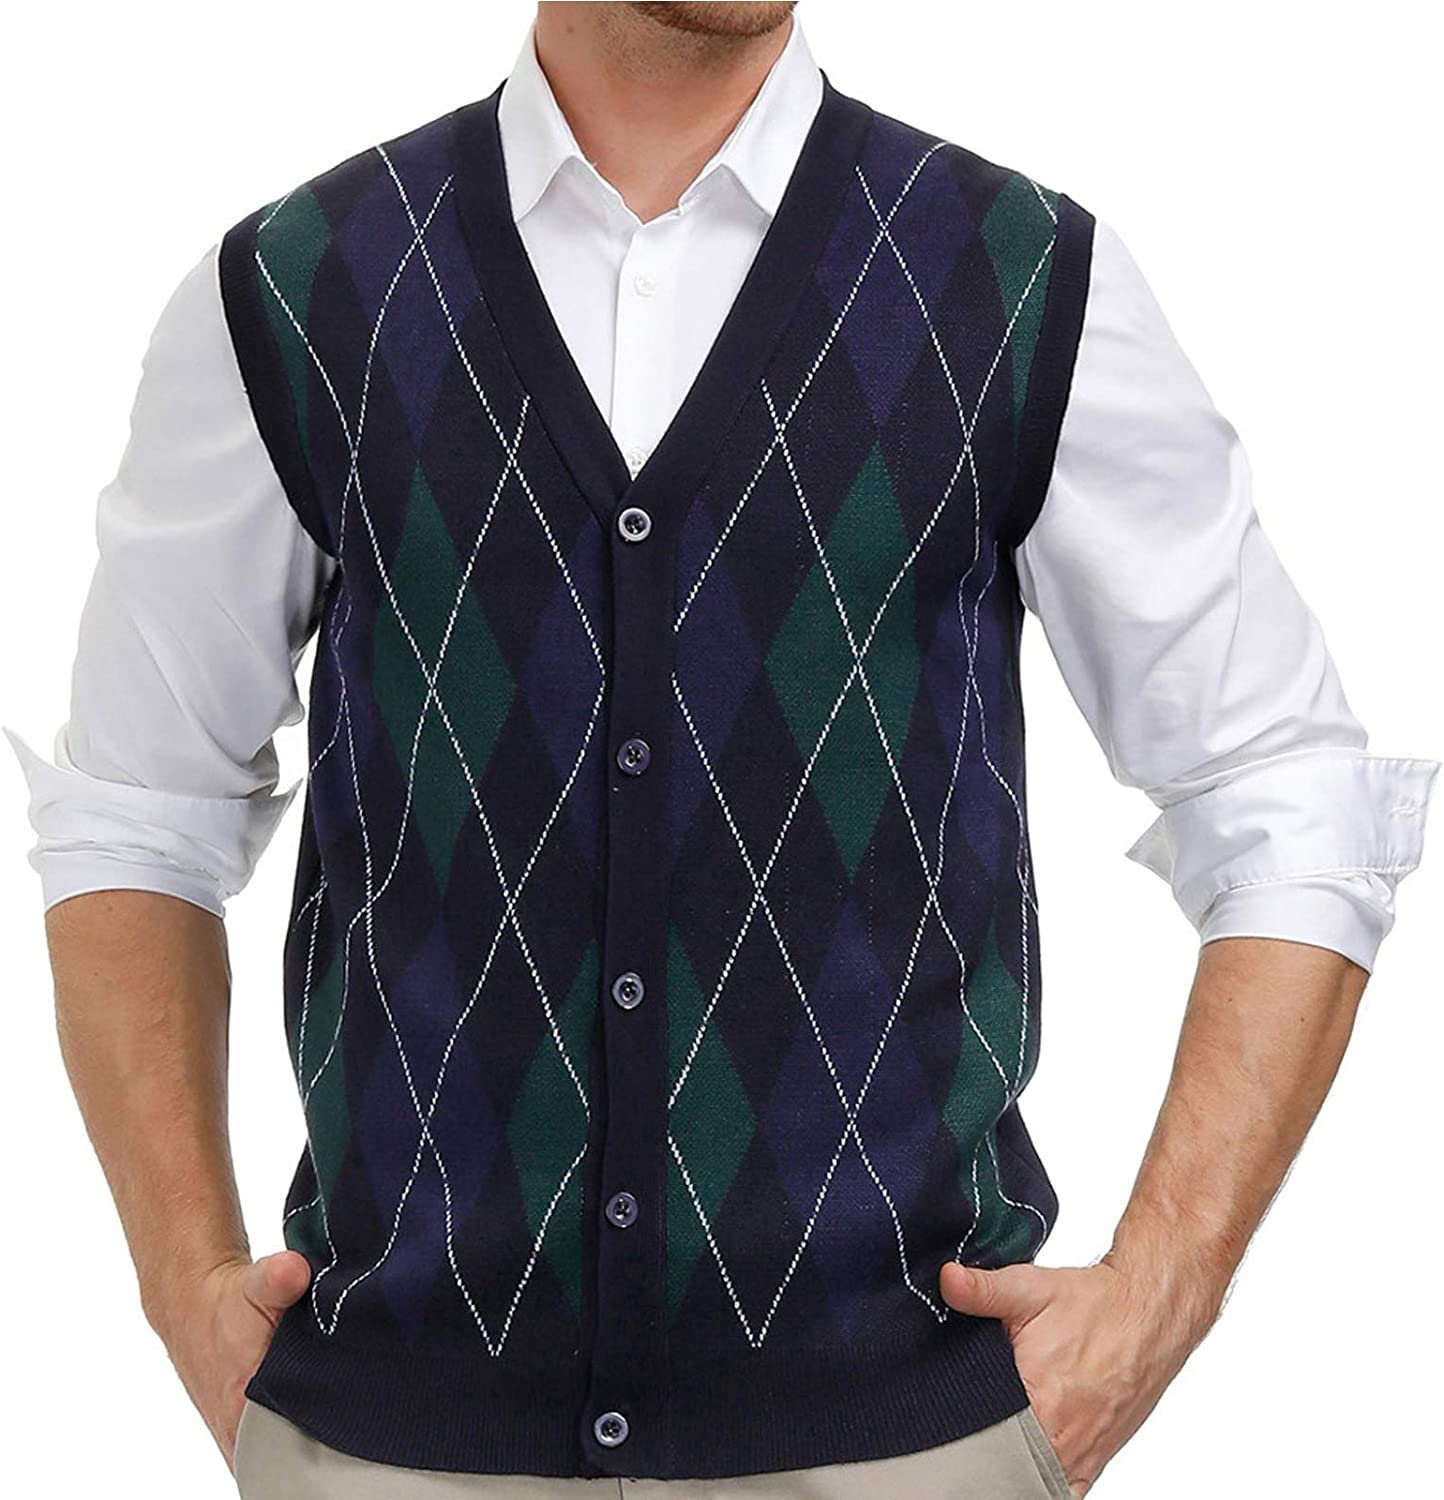 Men's Vintage Sweaters, Retro Jumpers 1920s to 1980s PJ PAUL JONES Mens Sweater Vest Cardigan Button Front Knitwear Contrast Color Argyle Sweater Vest $24.99 AT vintagedancer.com